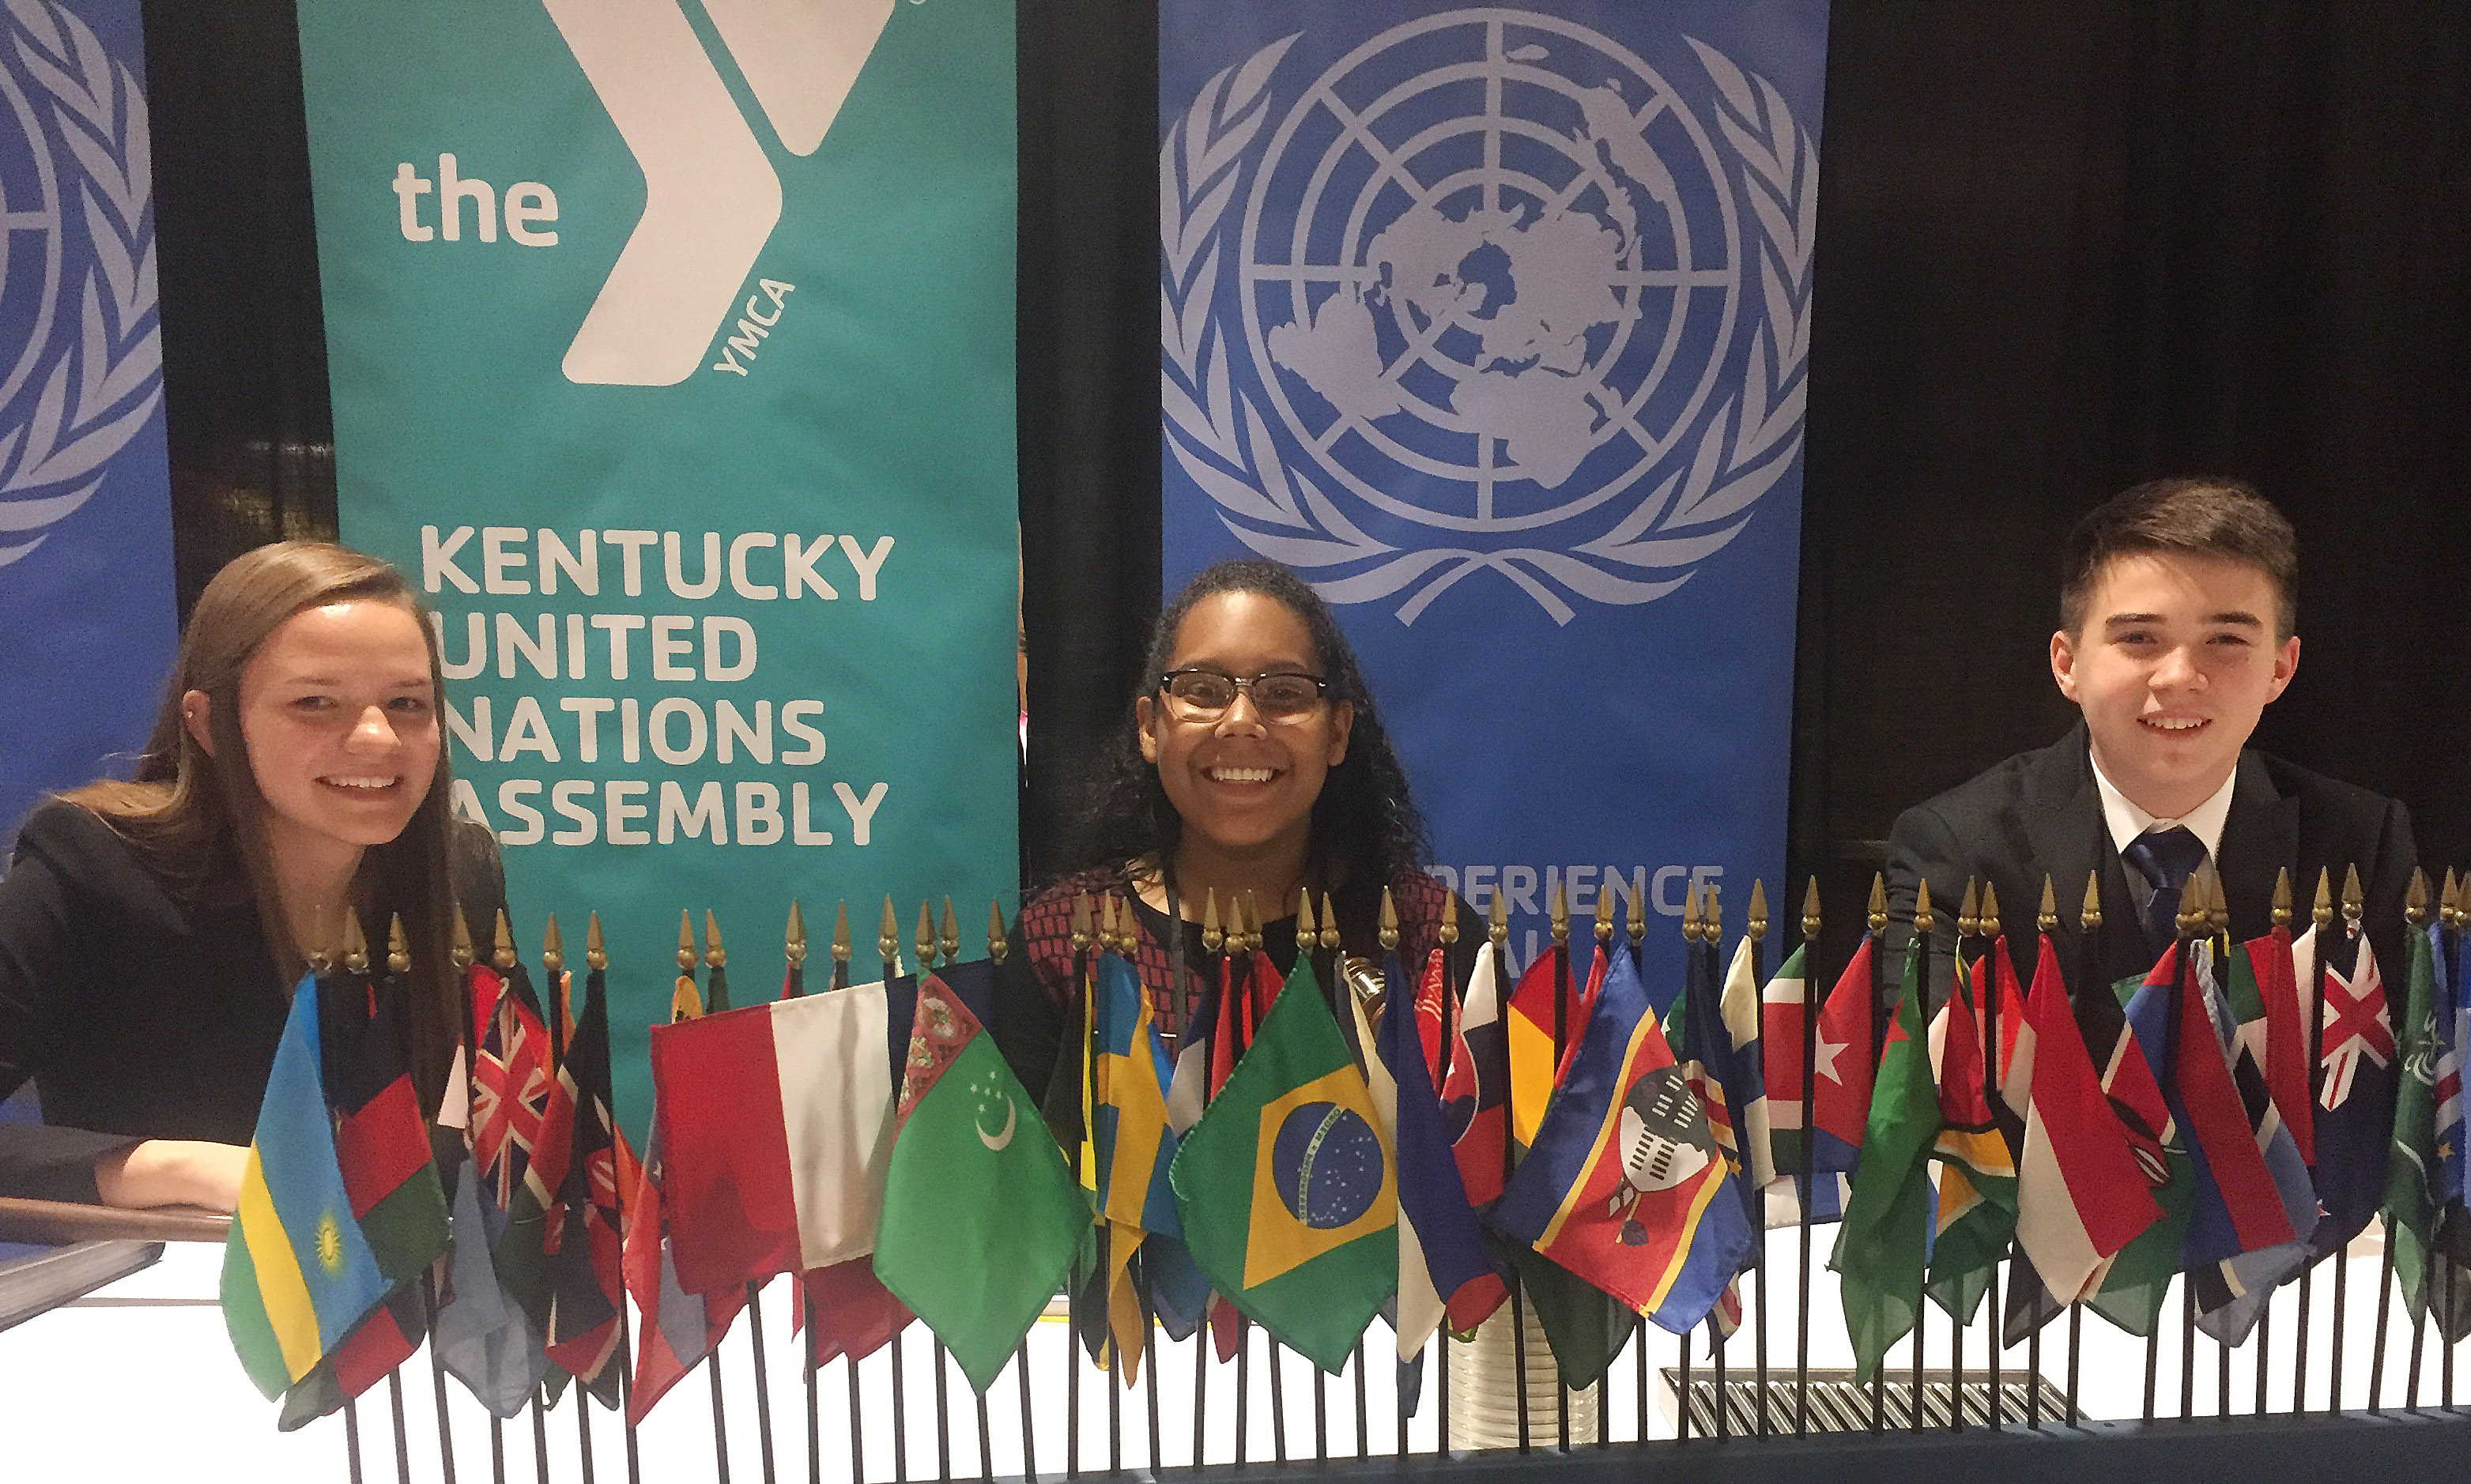 Campbellsville High School freshmen Zaria Cowan, center, and Cole Kidwell, at right, attended KUNA and served in leadership roles. Cowan was president of the United Nations General Assembly, and Kidwell served as president of the Security Council. At left is Karly McKinney, at left, who was secretary general.